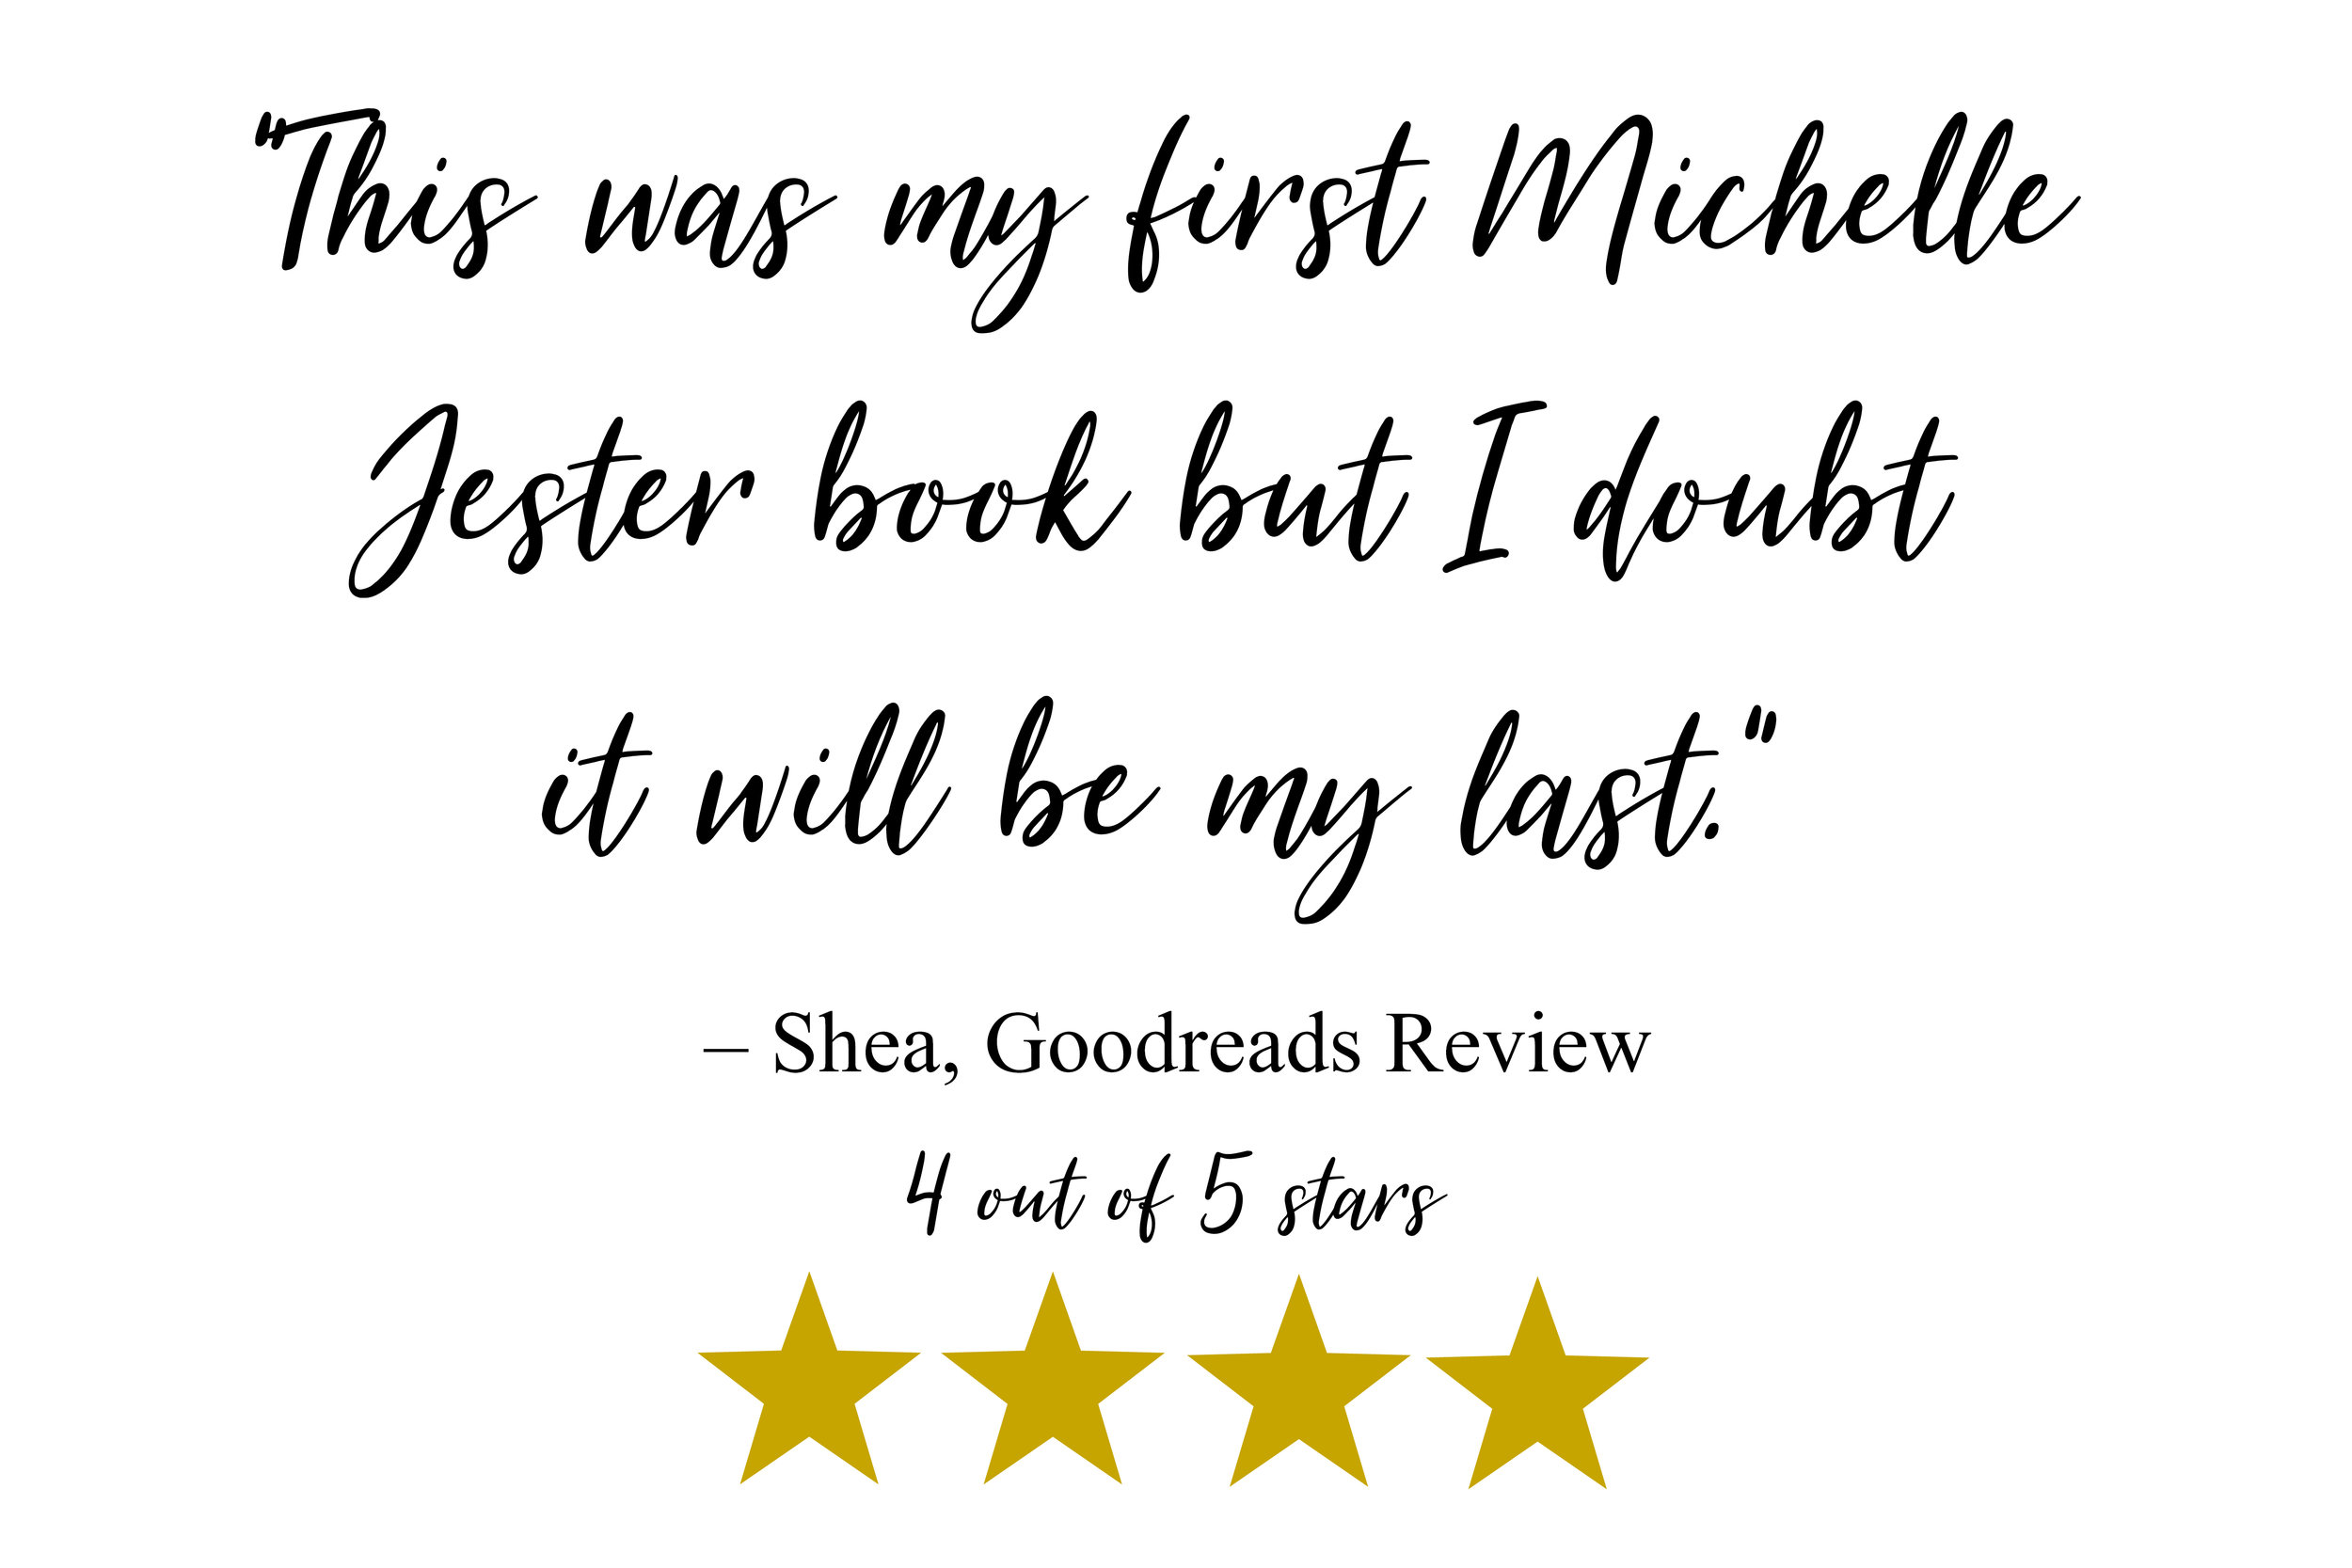 """This was my first Michelle Jester book but I doubt it will be my last."" – Shea, Goodreads"